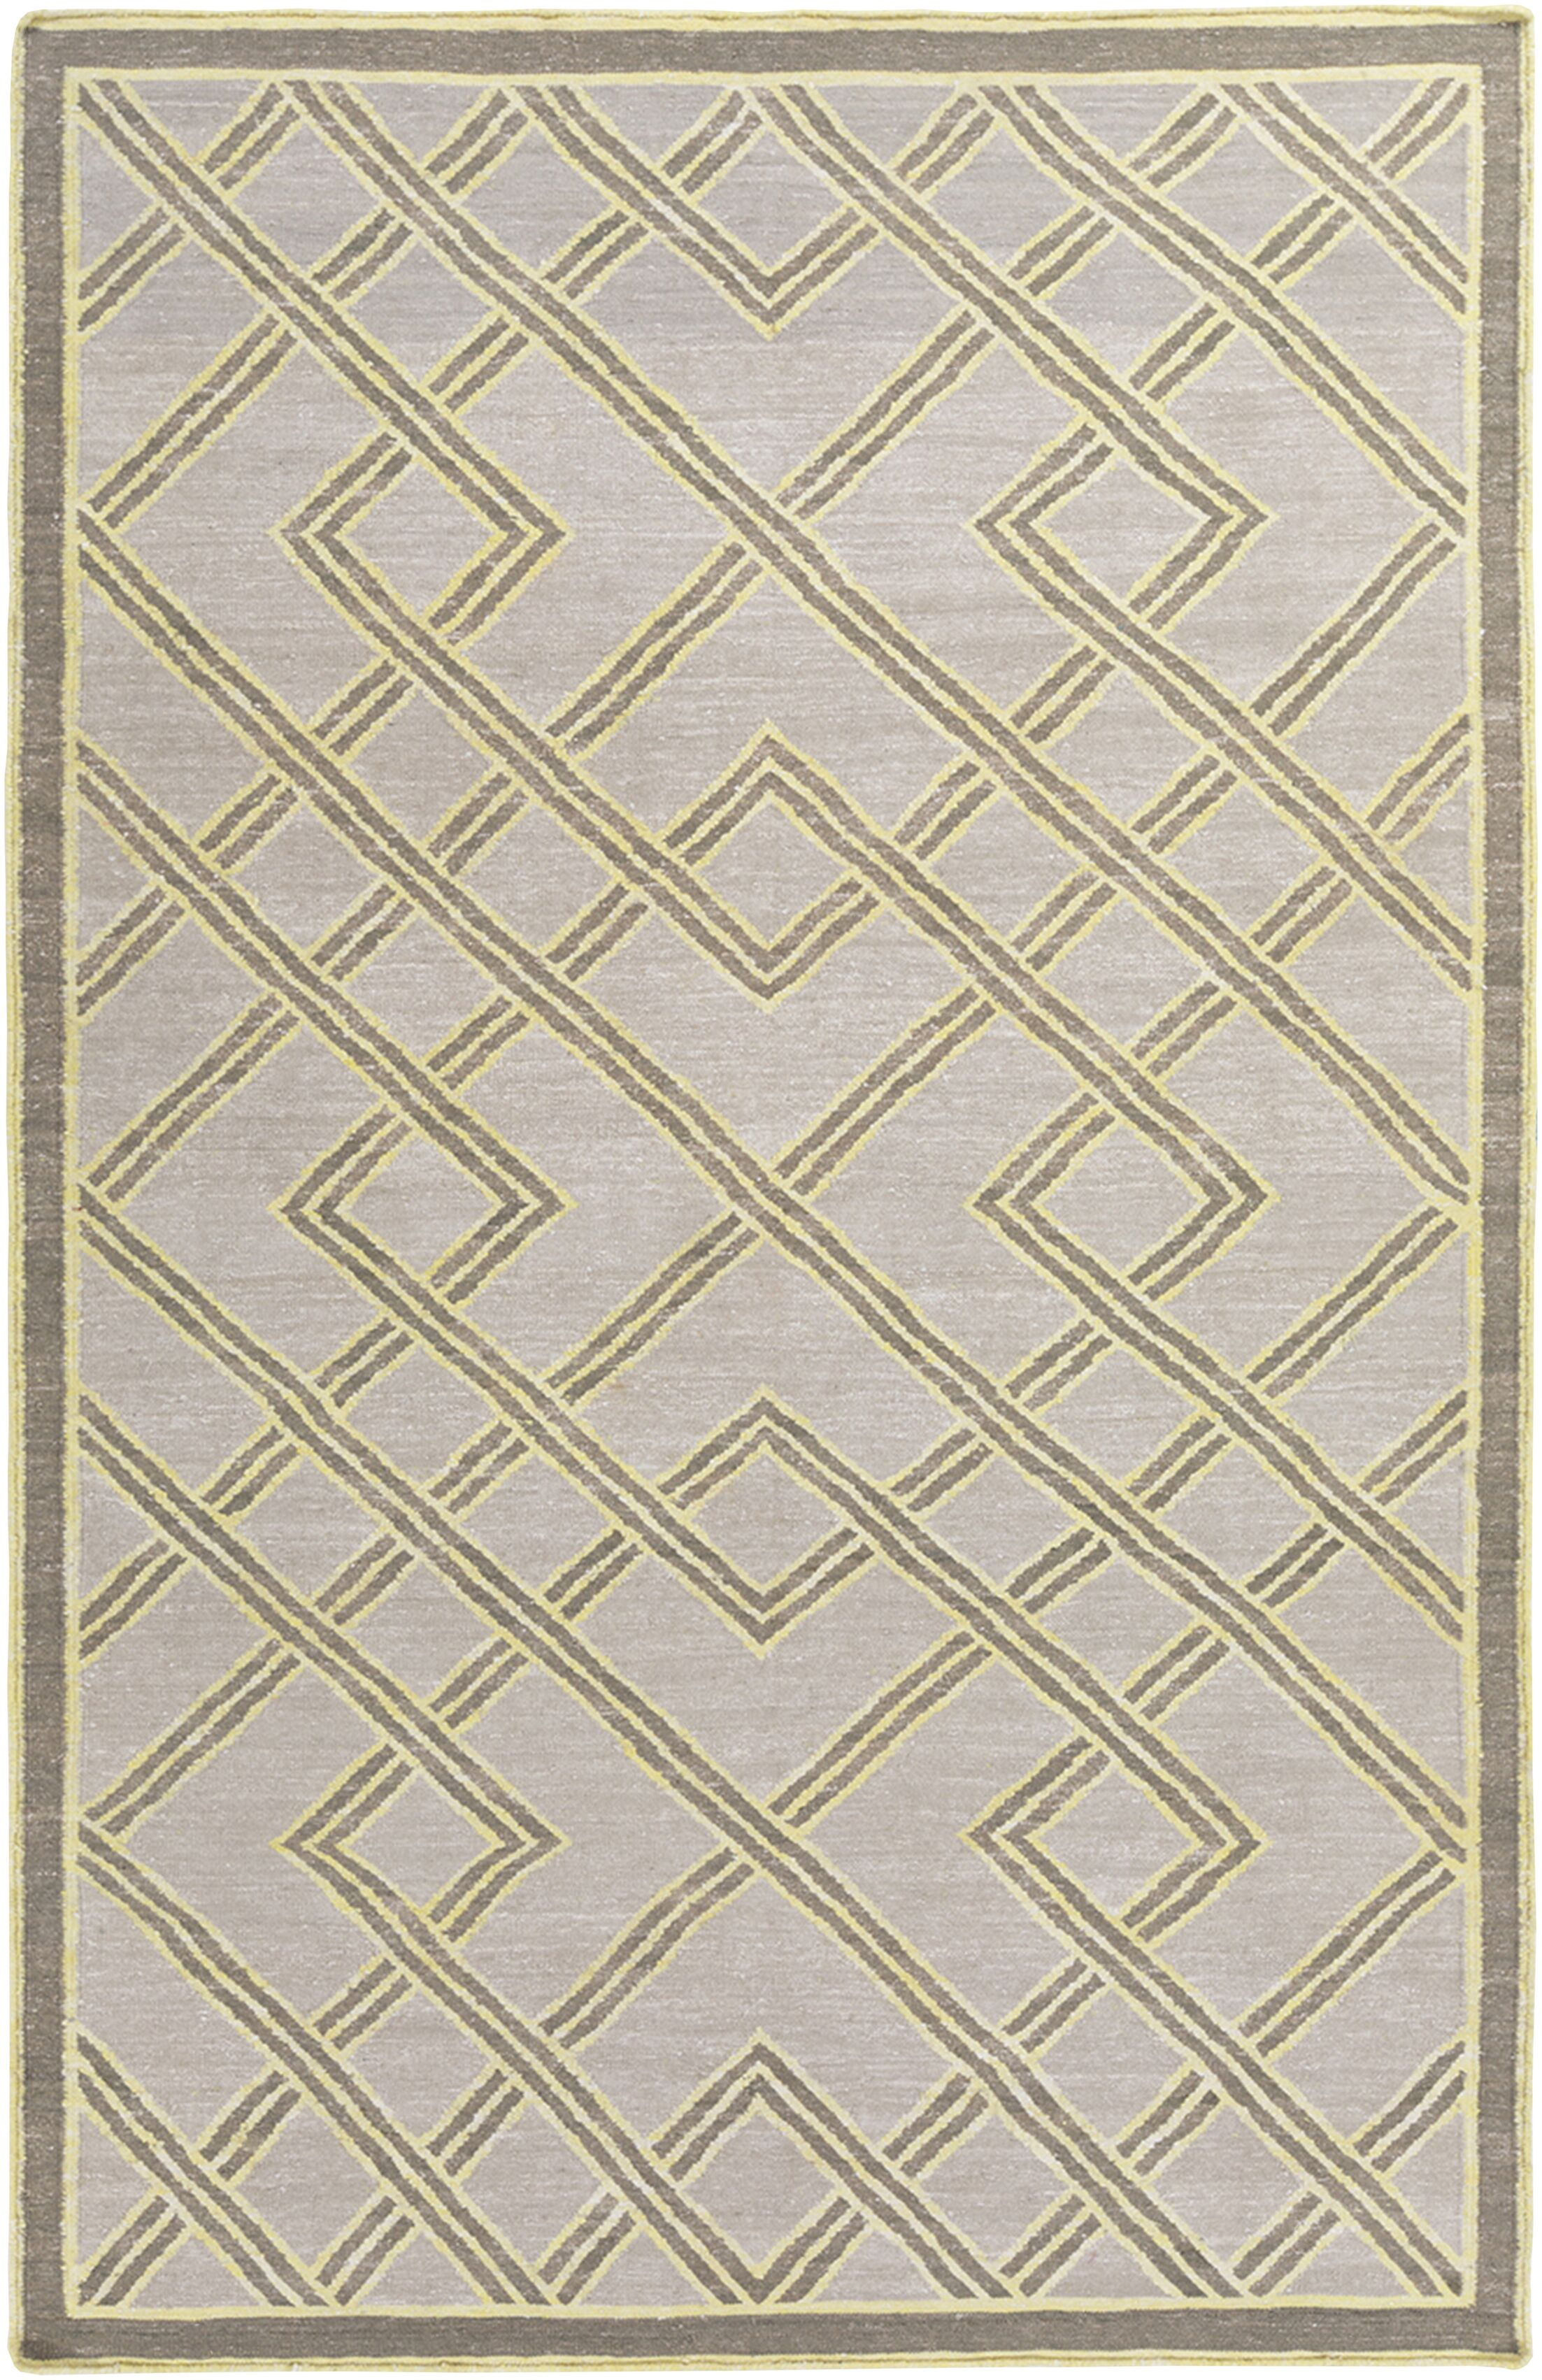 Mare Hand Woven Gray Area Rug Rug Size: Rectangle 2' x 3'